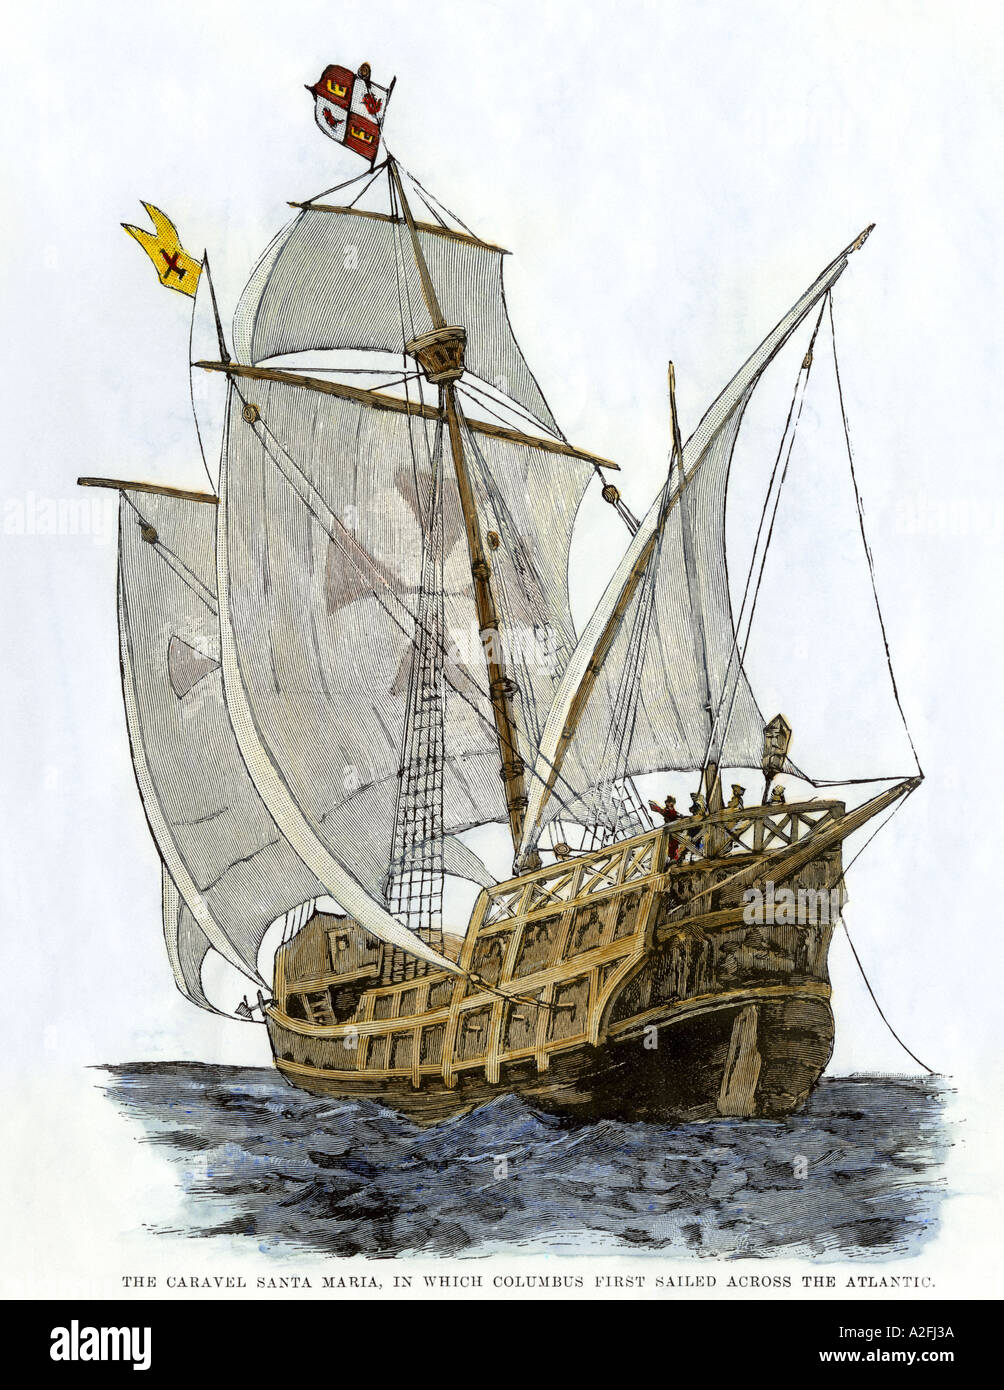 Caravel Santa Maria The Flagship Of Columbus First Voyage Which Sank Off Hispaniola In 1492 Hand Colored Woodcut